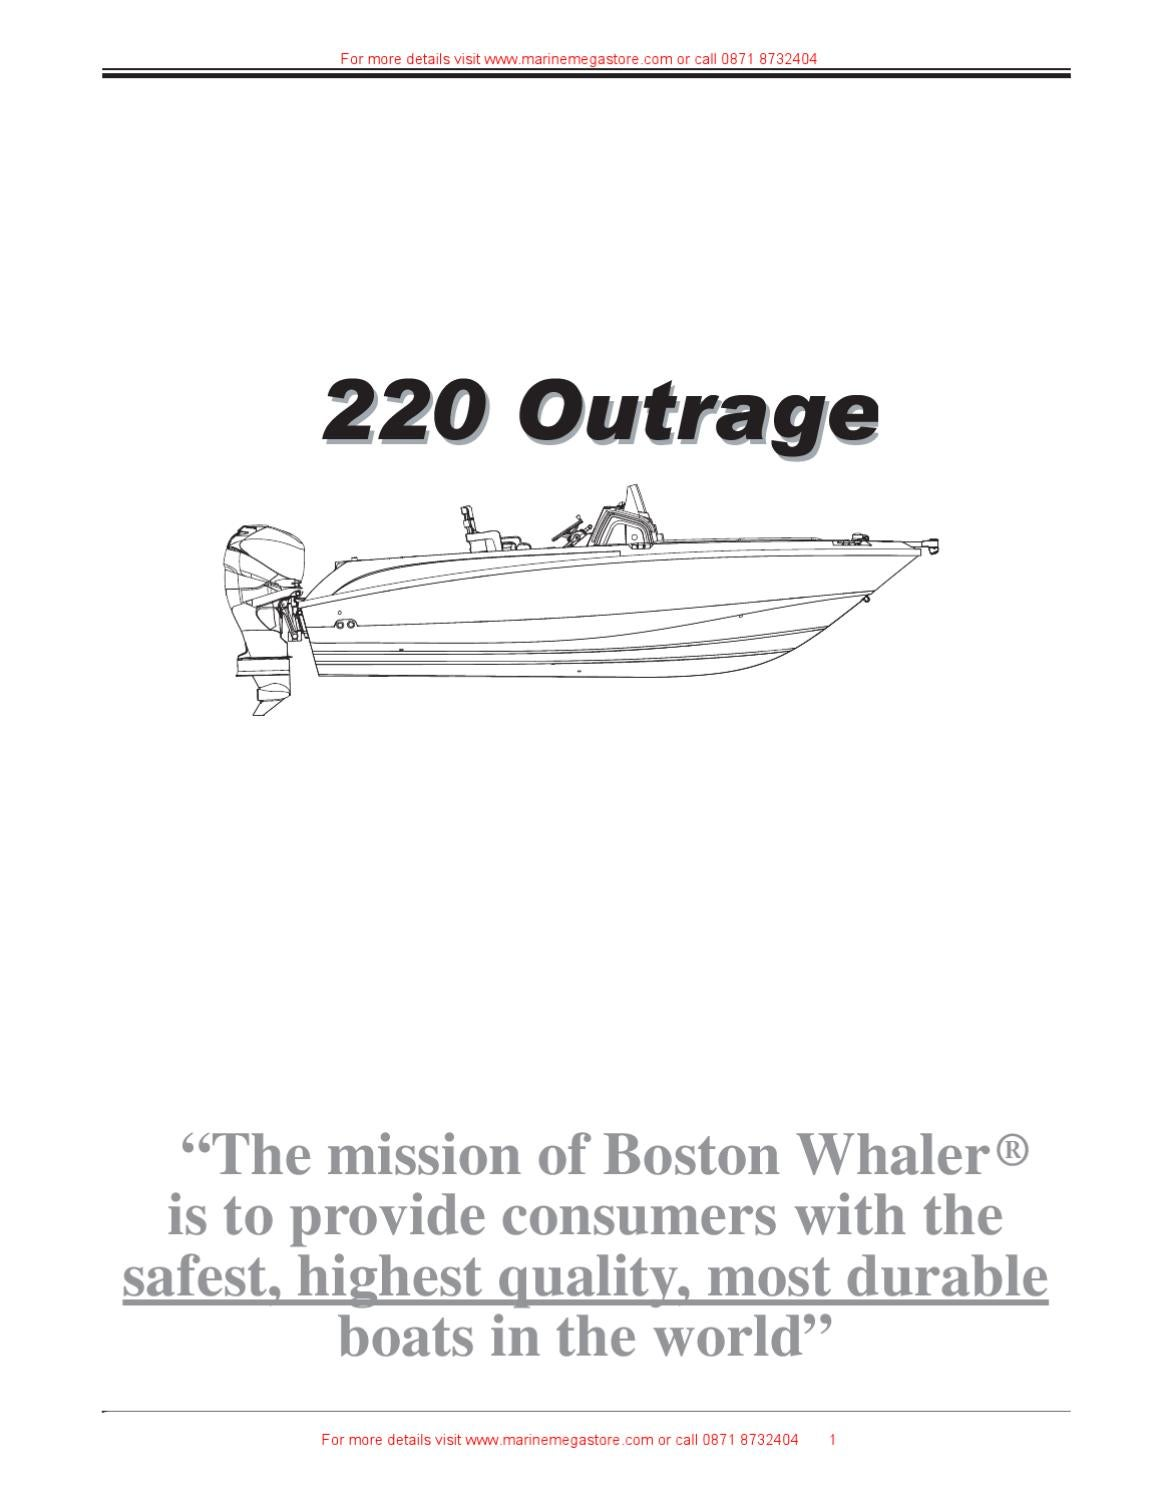 Boston Whaler 220 Outrage By Marine Mega Store Ltd Issuu Wiring Harness